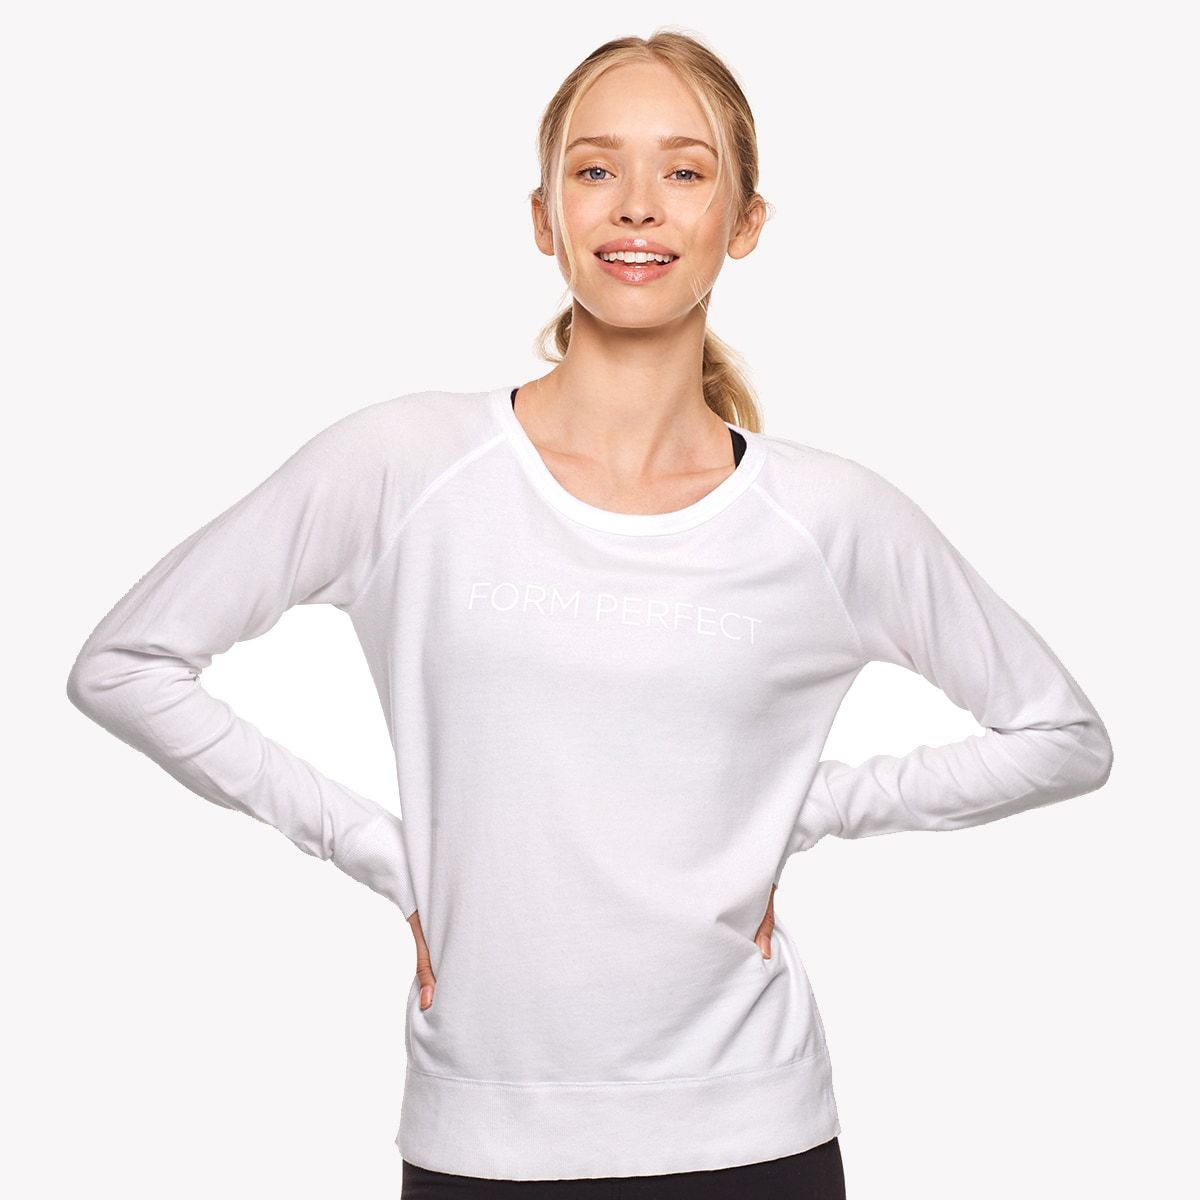 form perfect sweatshirt